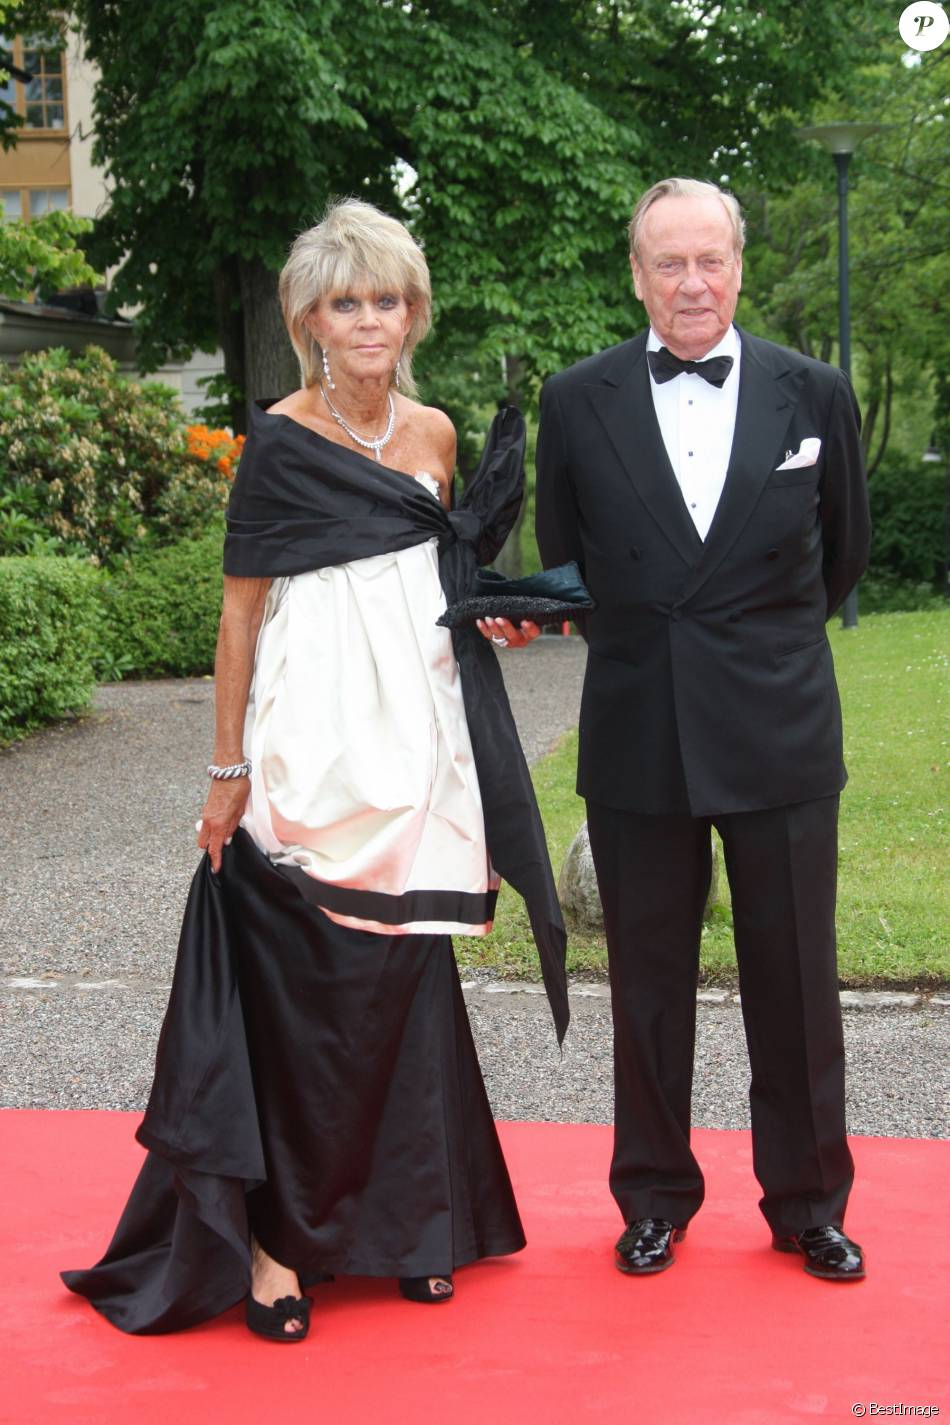 La princesse Birgitta de Suède et le prince Johann Georg von Hohenzollern à Stockholm en juin 2010 lors du mariage de la princesse Victoria et de Daniel Westling. Johann Georg, surnommé Hansi, est décédé à 83 ans le 2 mars 2016 à Munich.      Archives - décès le 2 mars 2016 de Johann Georg Hansi von Hohenzollern ( mari de la princesse Birgitta de Suède, soeur du roi de Suède) STOCKHOLM 2010-06-18. Royal wedding in Stockholm. Today the Swedish Government hosted a dinner at Eric Ericsson hall, Skeppsholmen, in honour of Saturdays wedding between Crown Princess Victoria of Sweden and Mr Daniel Westling. Picture shows: Princess Birgitta of Sweden and Johann Georg af Hohenzollern Photo: Marius Gulliksrud Code: 5008 COPYRIGHT STELLA PICTURES18/06/2010 - Stockholm